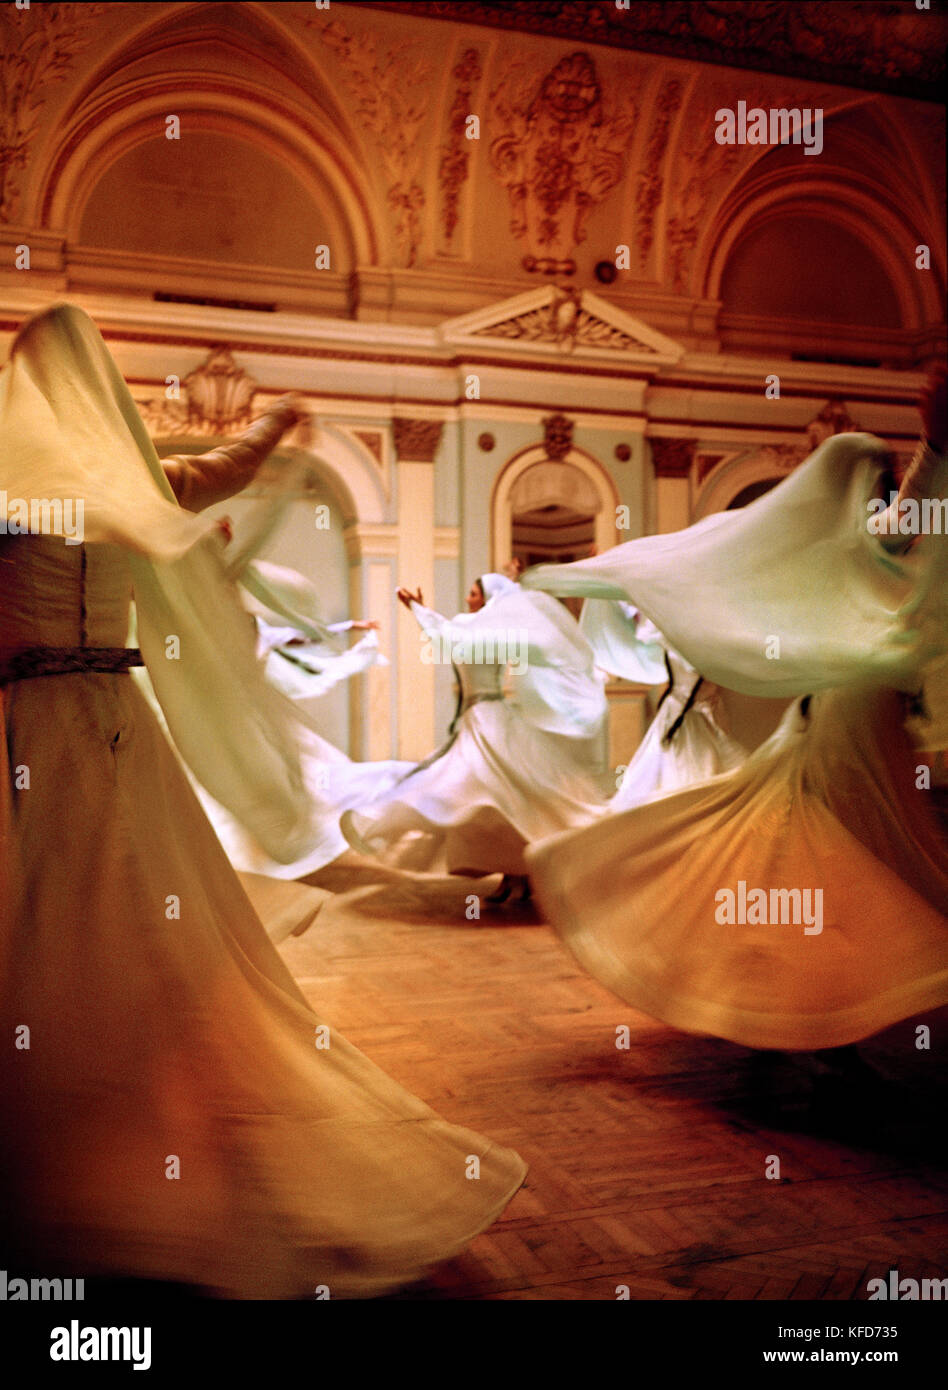 REPUBLIC OF GEORGIA, Whirling Dervishes performing, Tbilisi - Stock Image